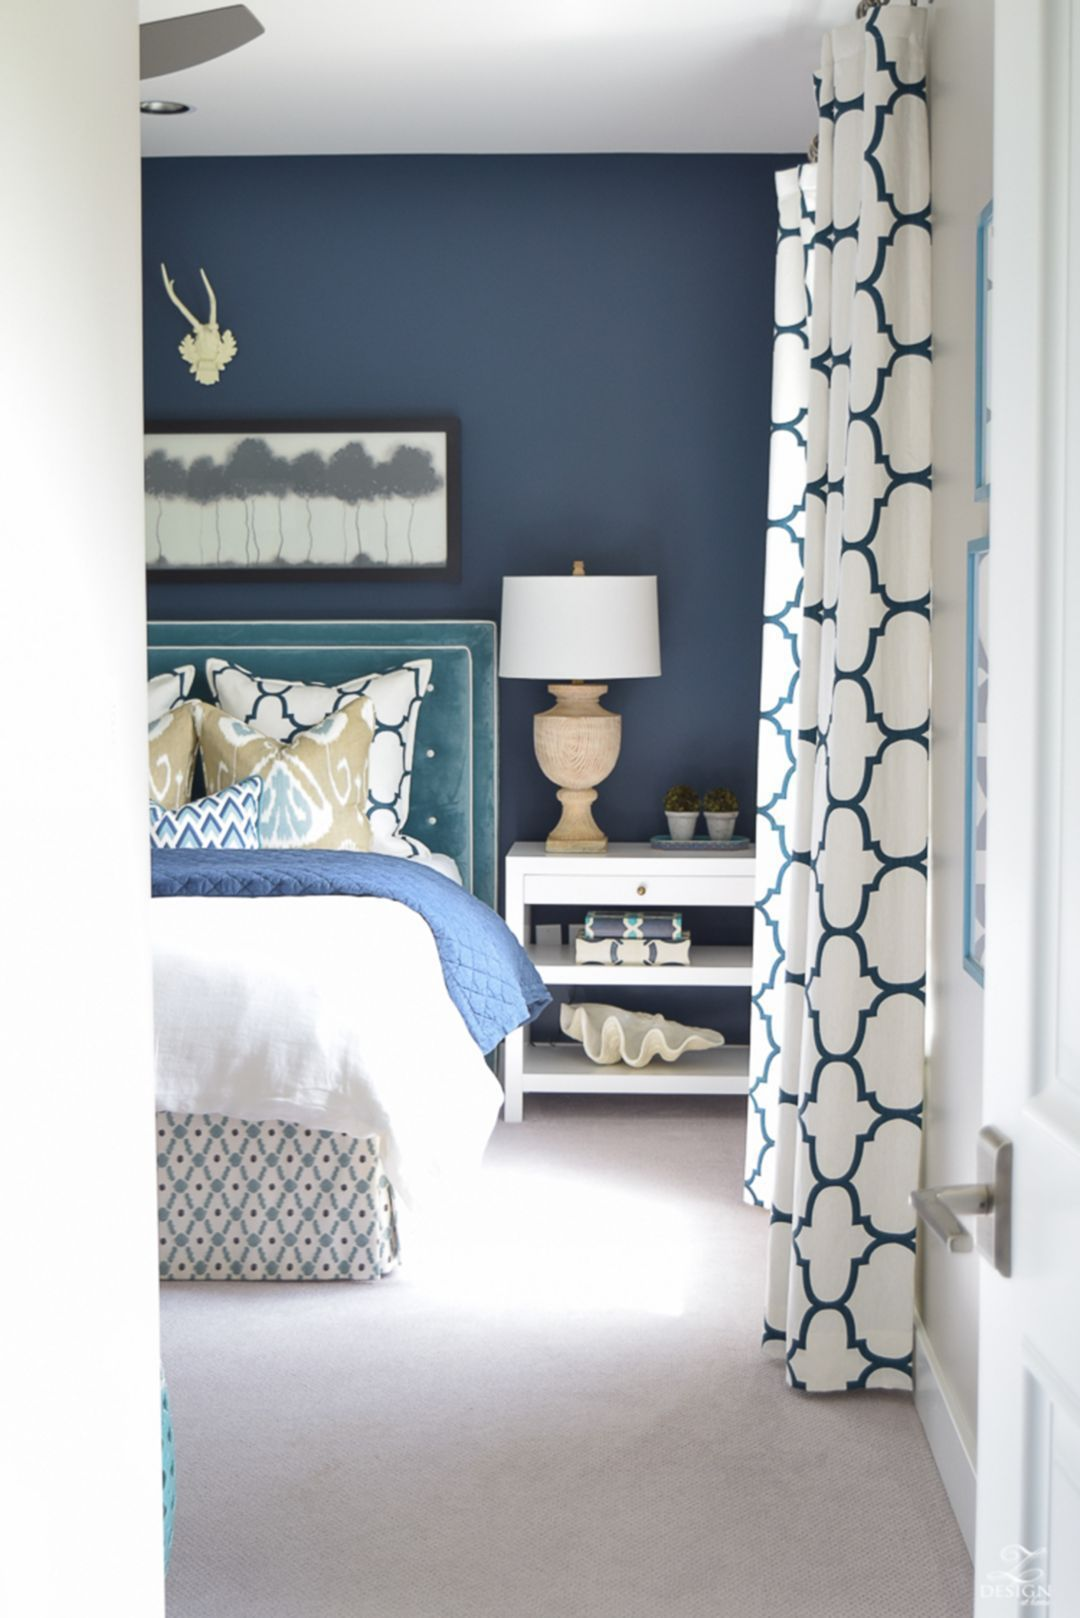 Top 10 Cool Navy And White Bedroom Design Ideas To Make